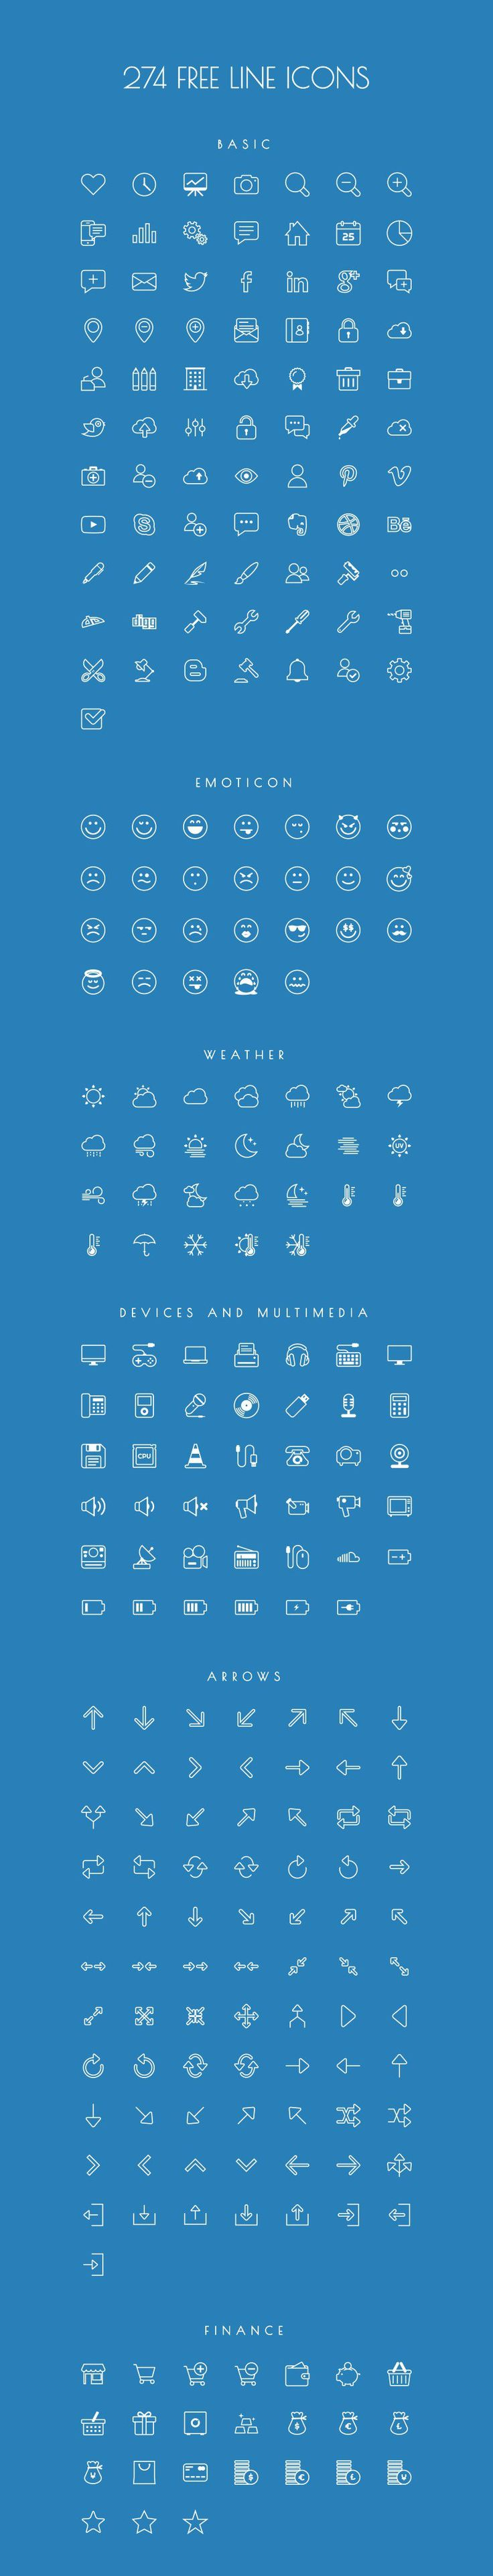 Image 7160 Free Outline Icon Sets Perfect for Contemporary Designs